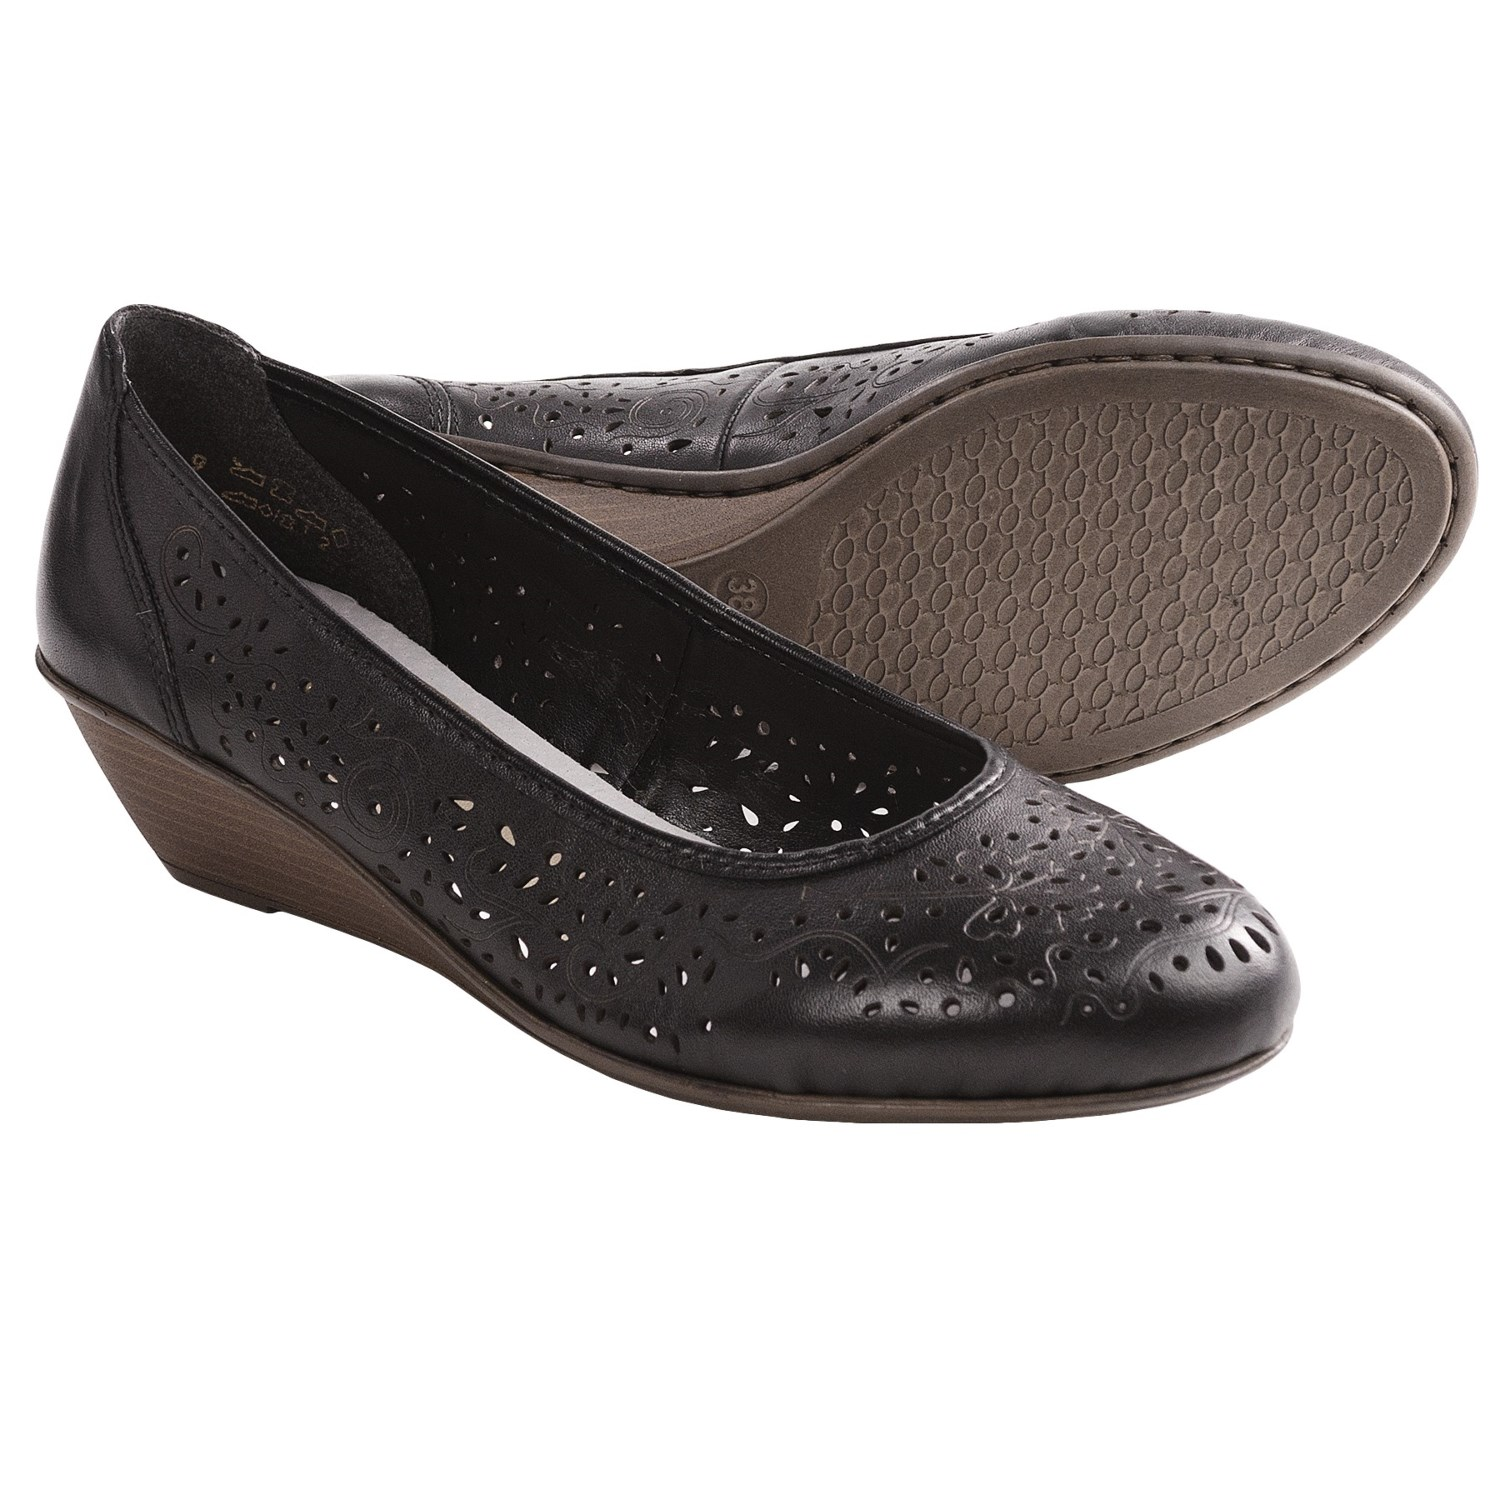 rieker 65 shoes leather wedge heel for